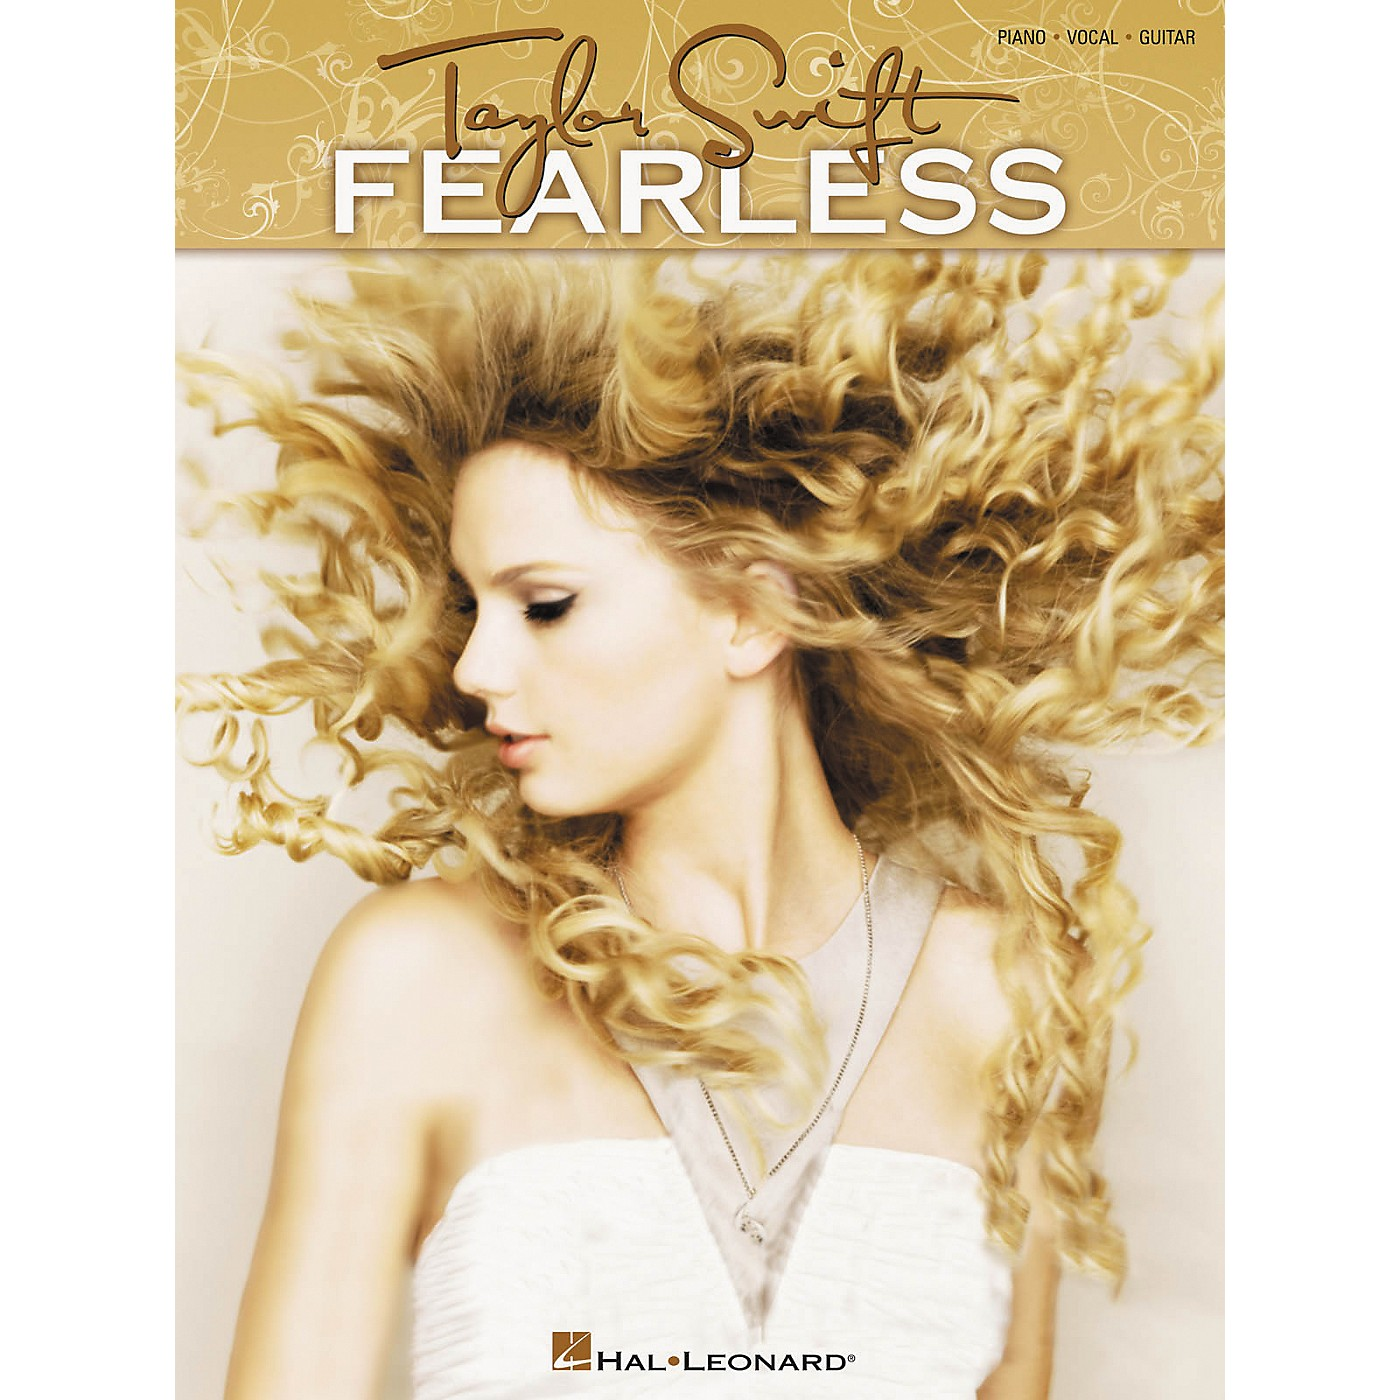 Hal Leonard Taylor Swift - Fearless Songbook for Piano, Vocal, and Guitar thumbnail